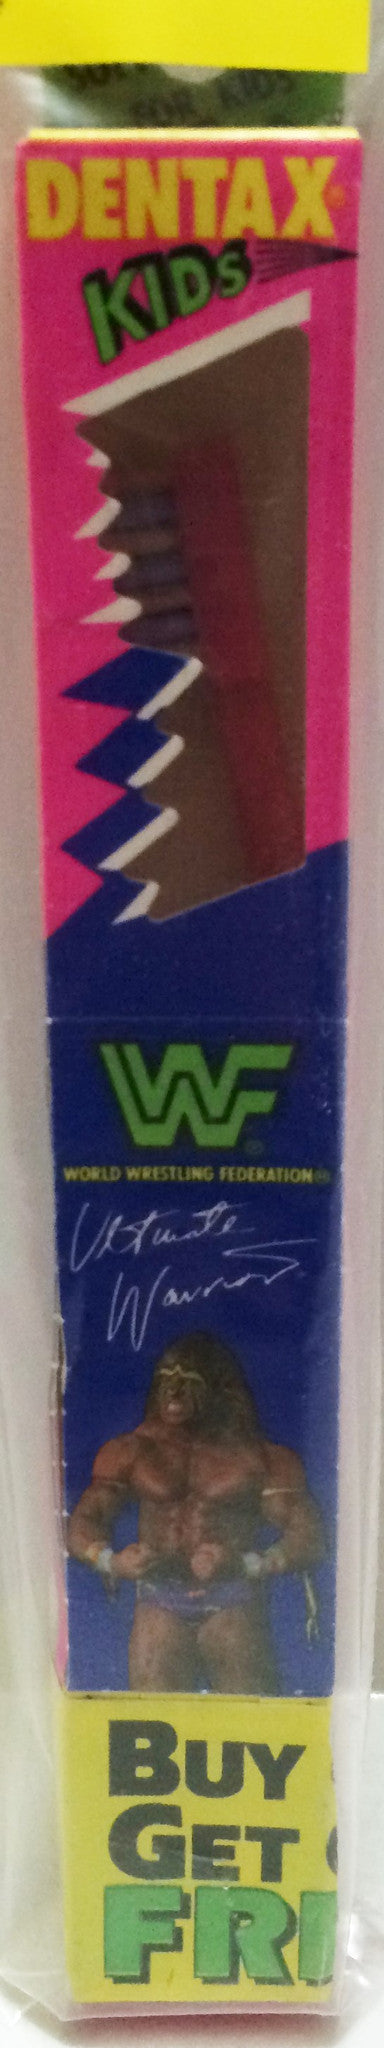 (TAS032669) - Dentax WWF WWE Wrestling Toothbrush - Ultimate Warrior, , Bath, Wrestling, The Angry Spider Vintage Toys & Collectibles Store